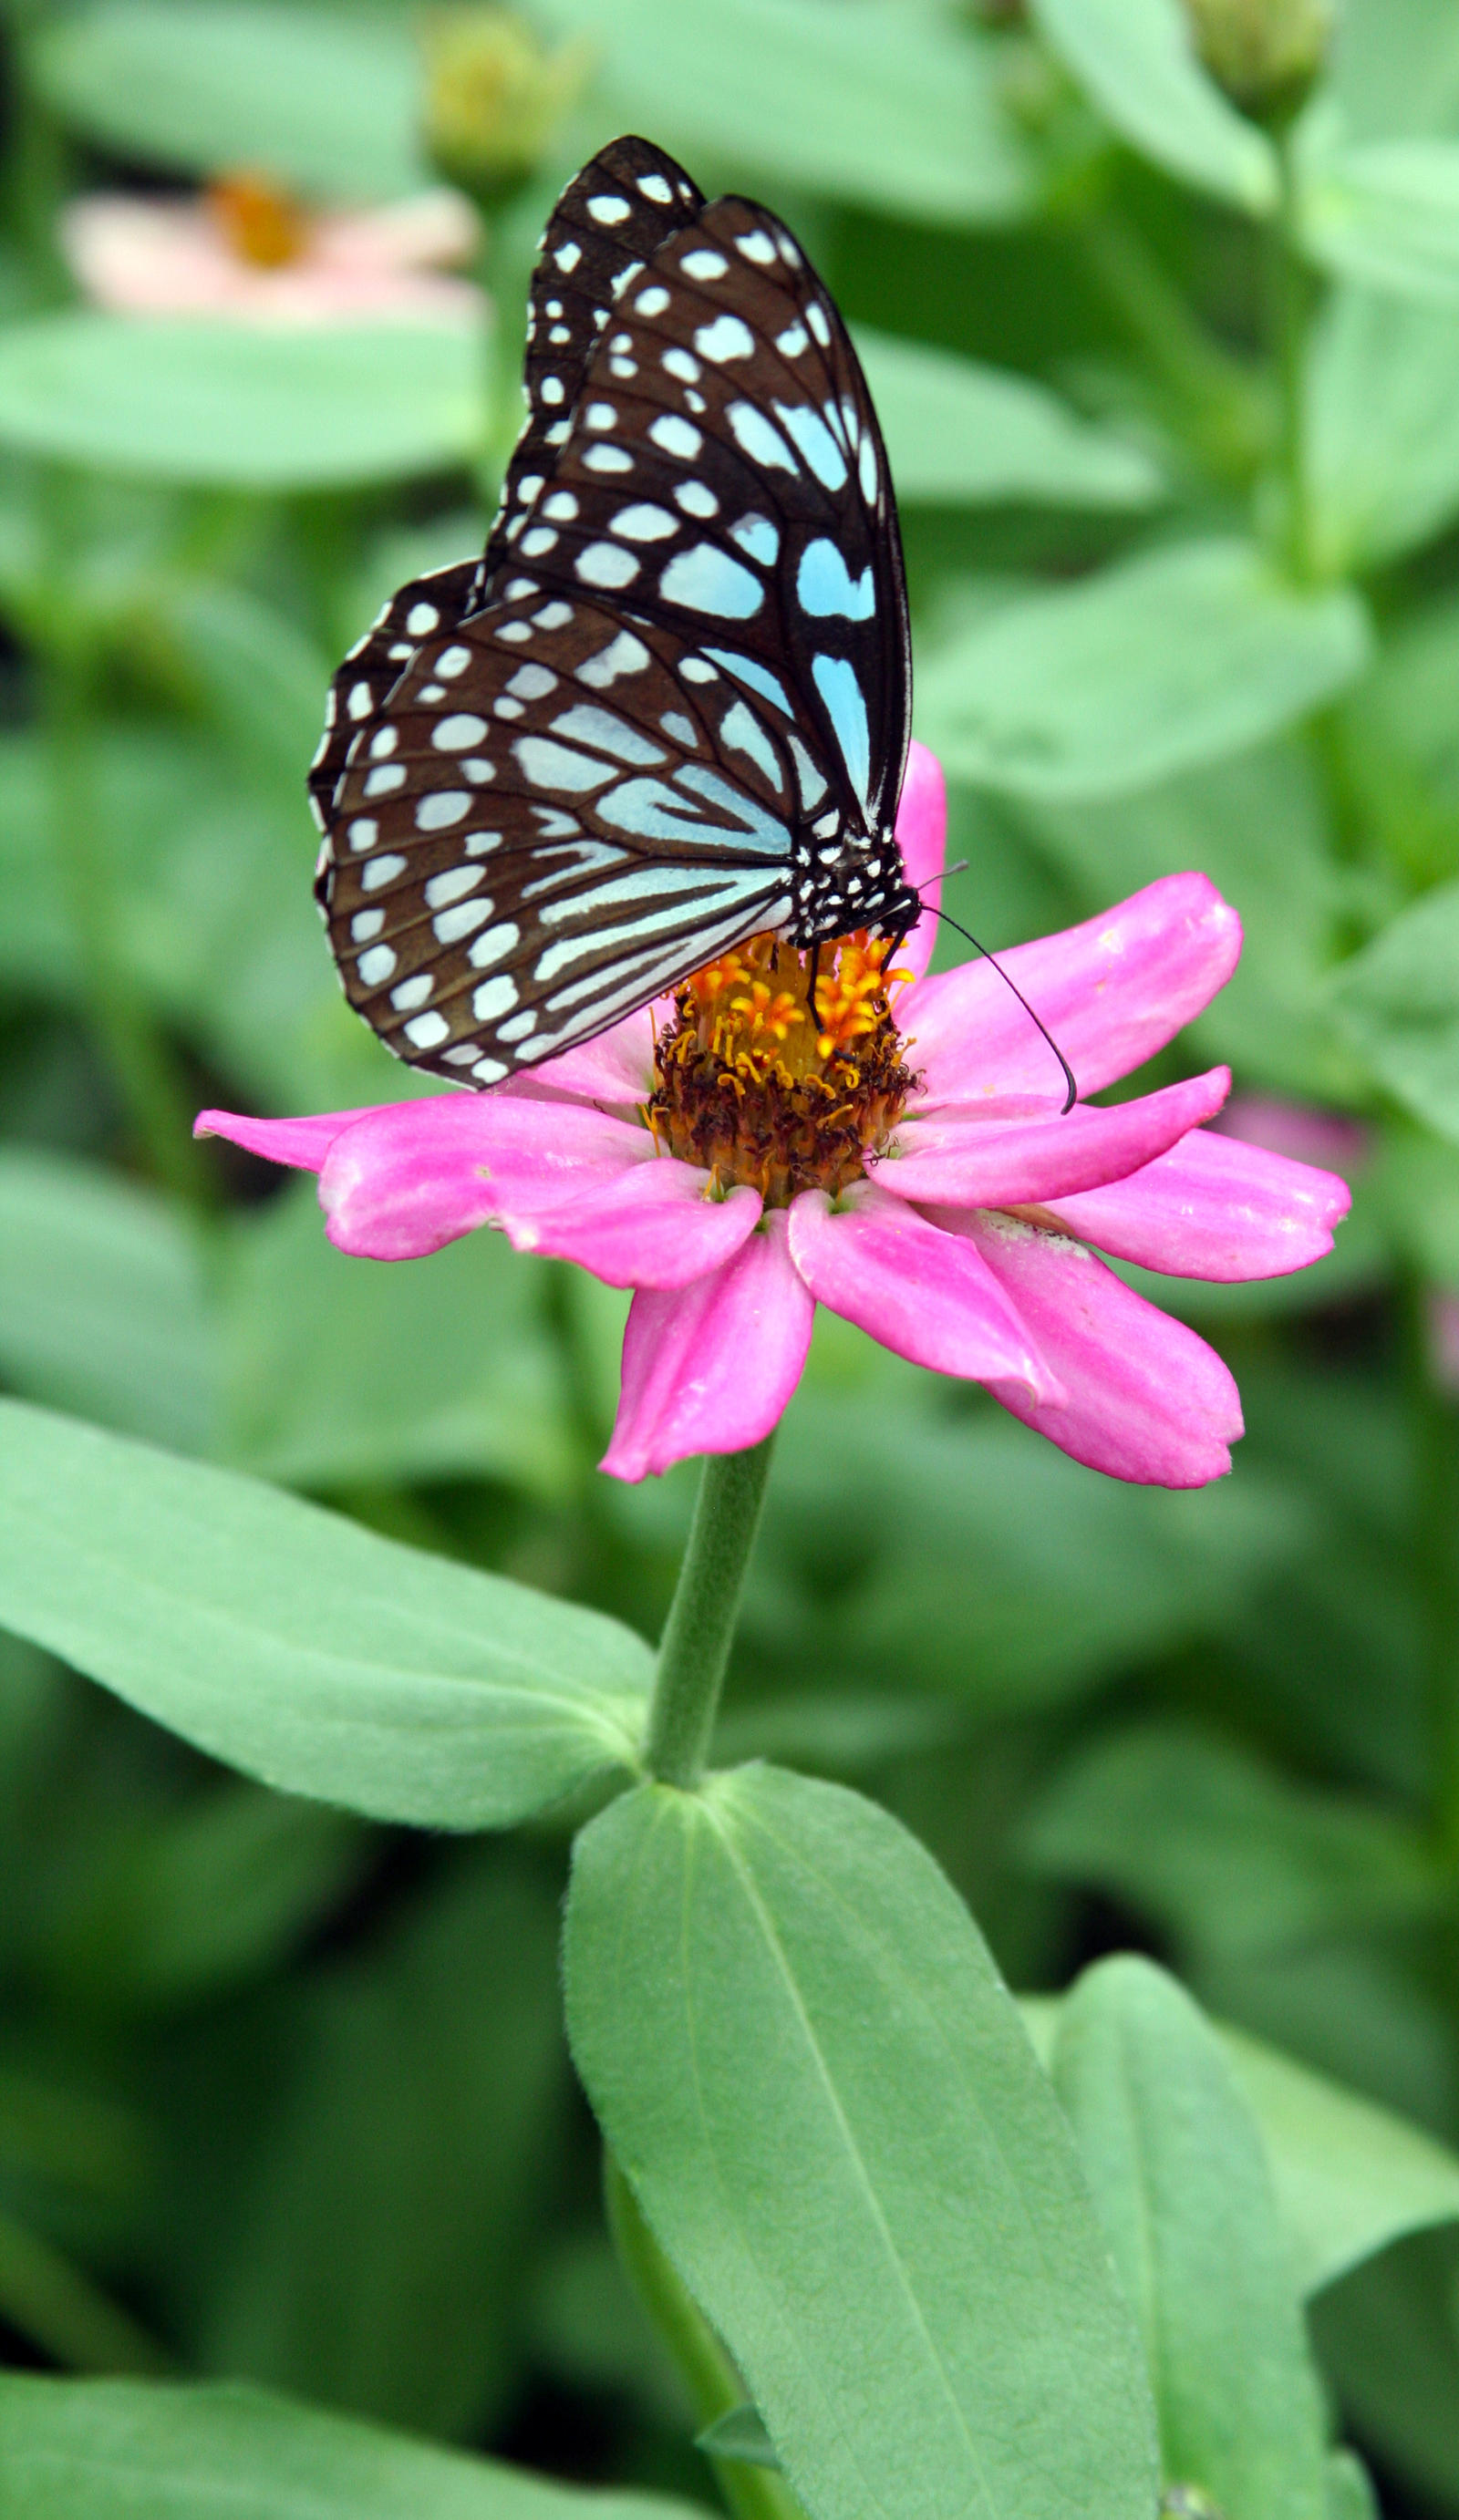 Blue Butterfly on Pink Flower by PanisEtCircense on DeviantArt